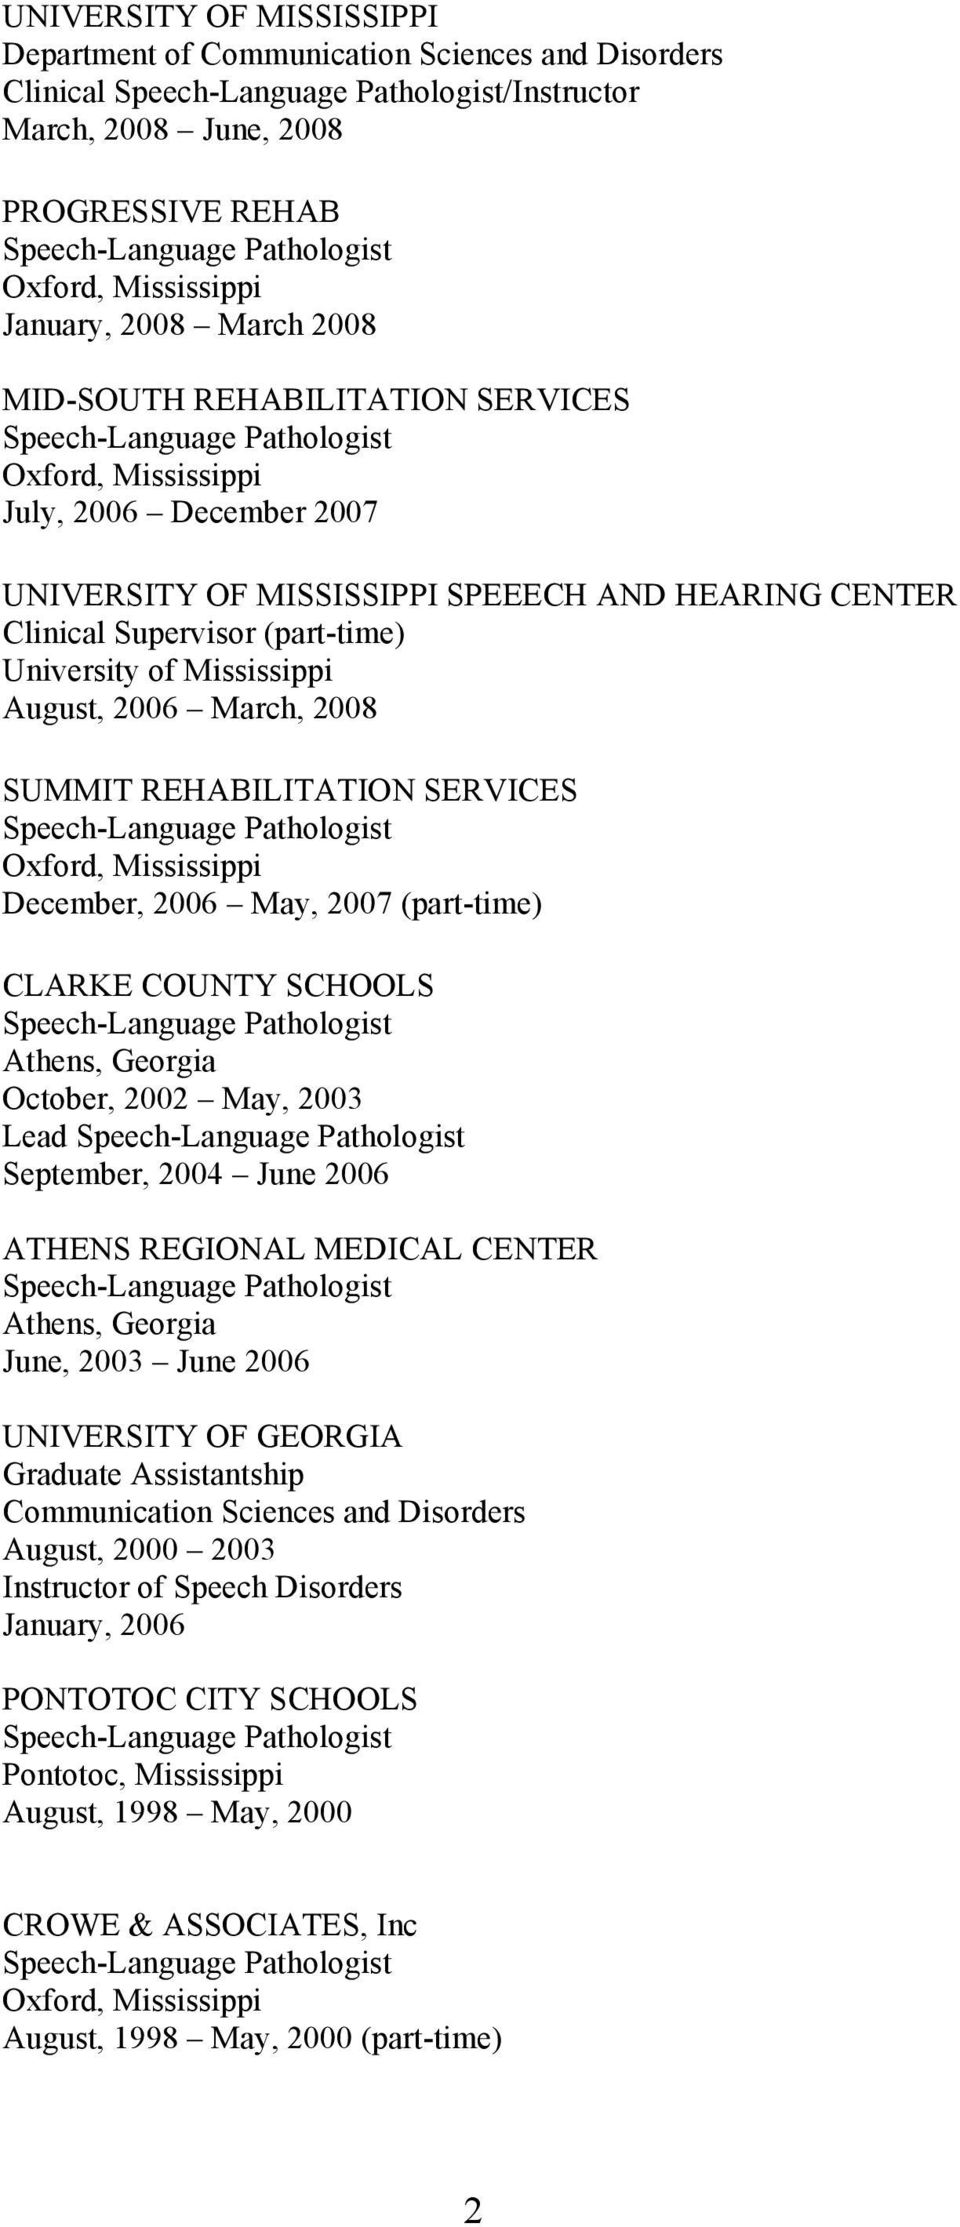 SCHOOLS Athens, Georgia October, 2002 May, 2003 Lead September, 2004 June 2006 ATHENS REGIONAL MEDICAL CENTER Athens, Georgia June, 2003 June 2006 Graduate Assistantship Communication Sciences and